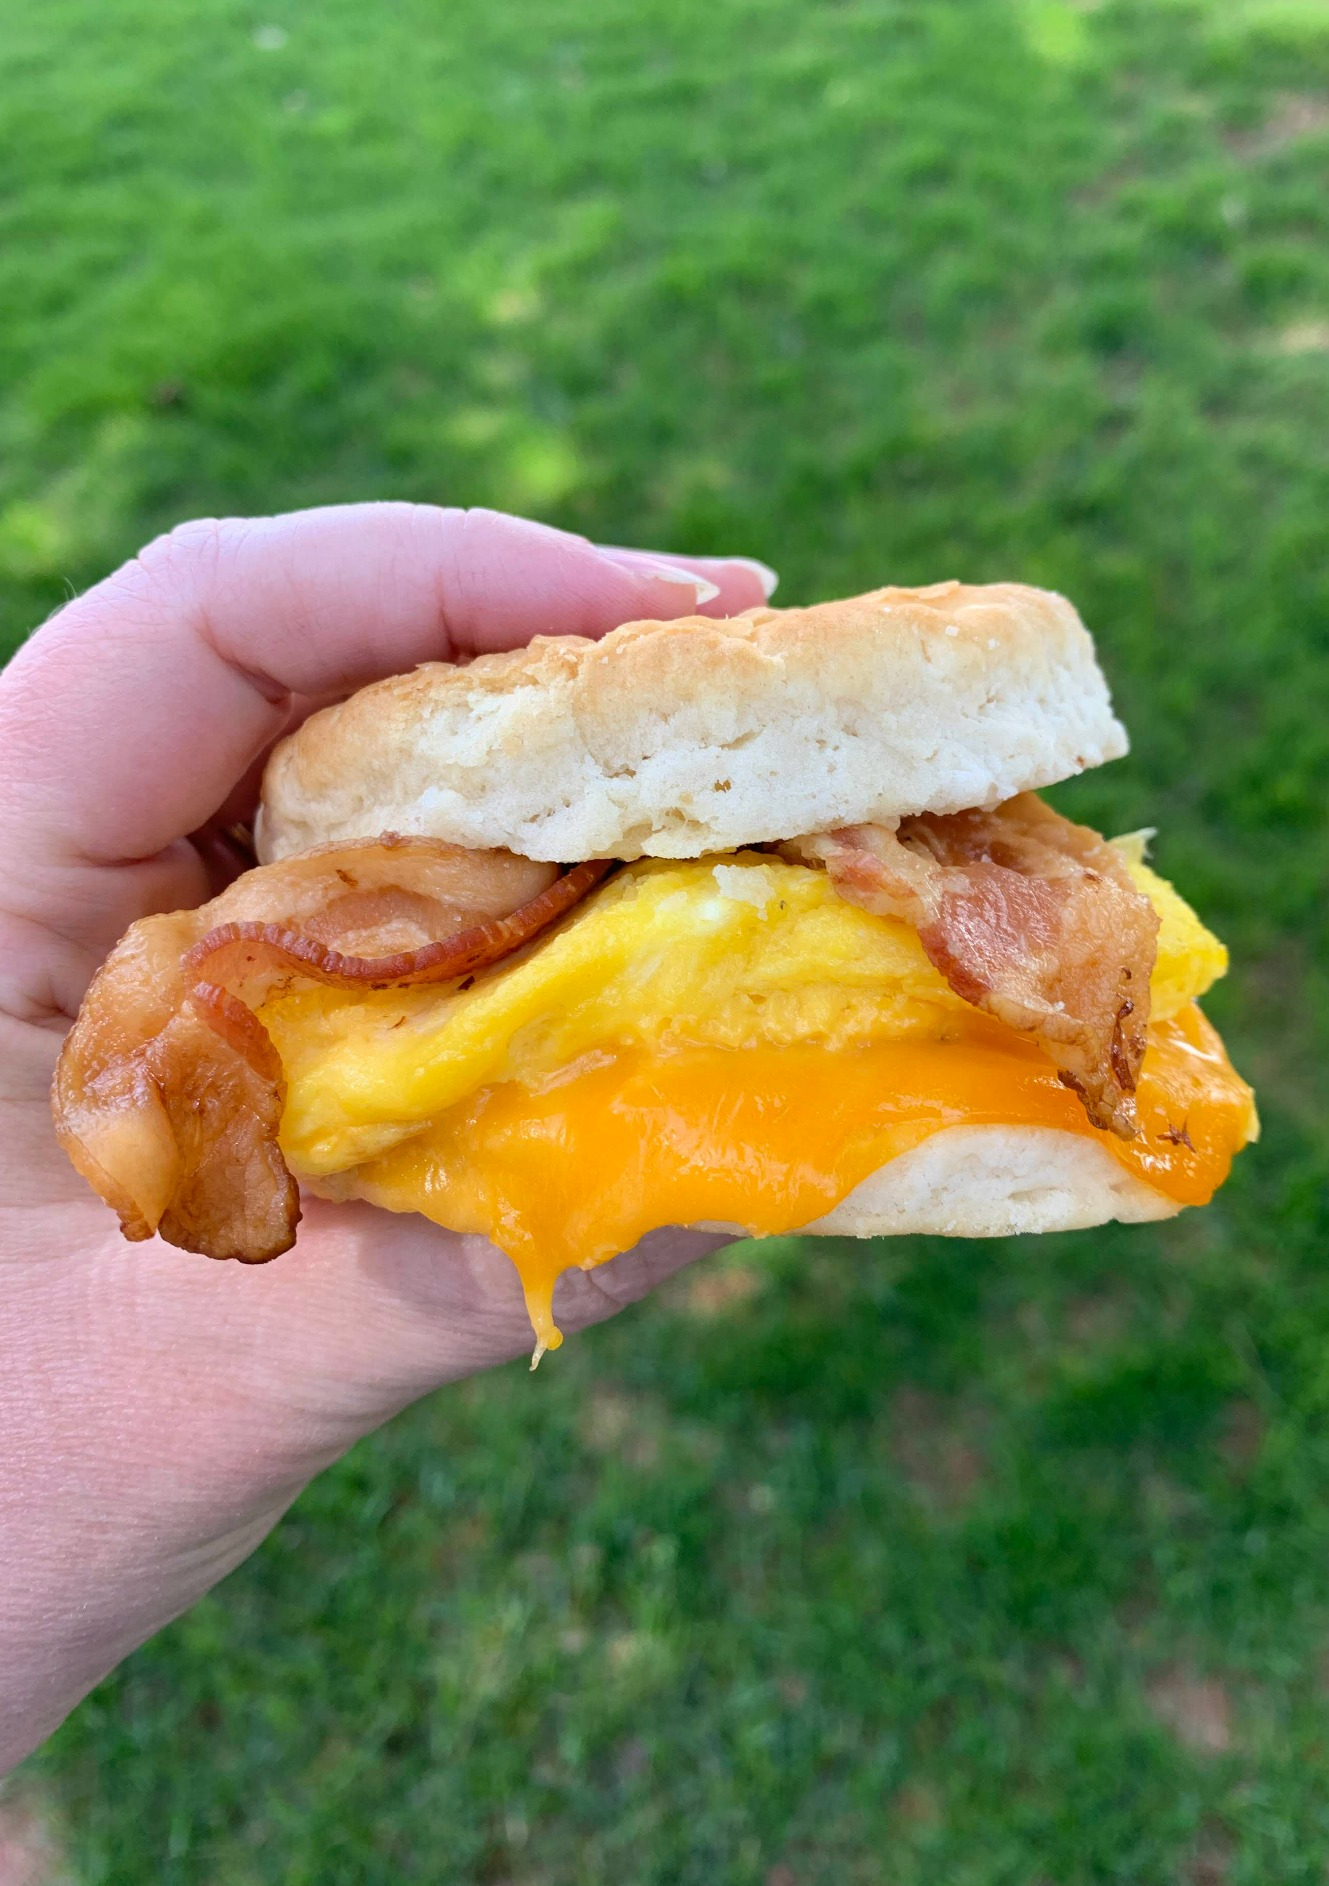 a hand holding a bacon egg cheese biscuit sandwich with grass in the background